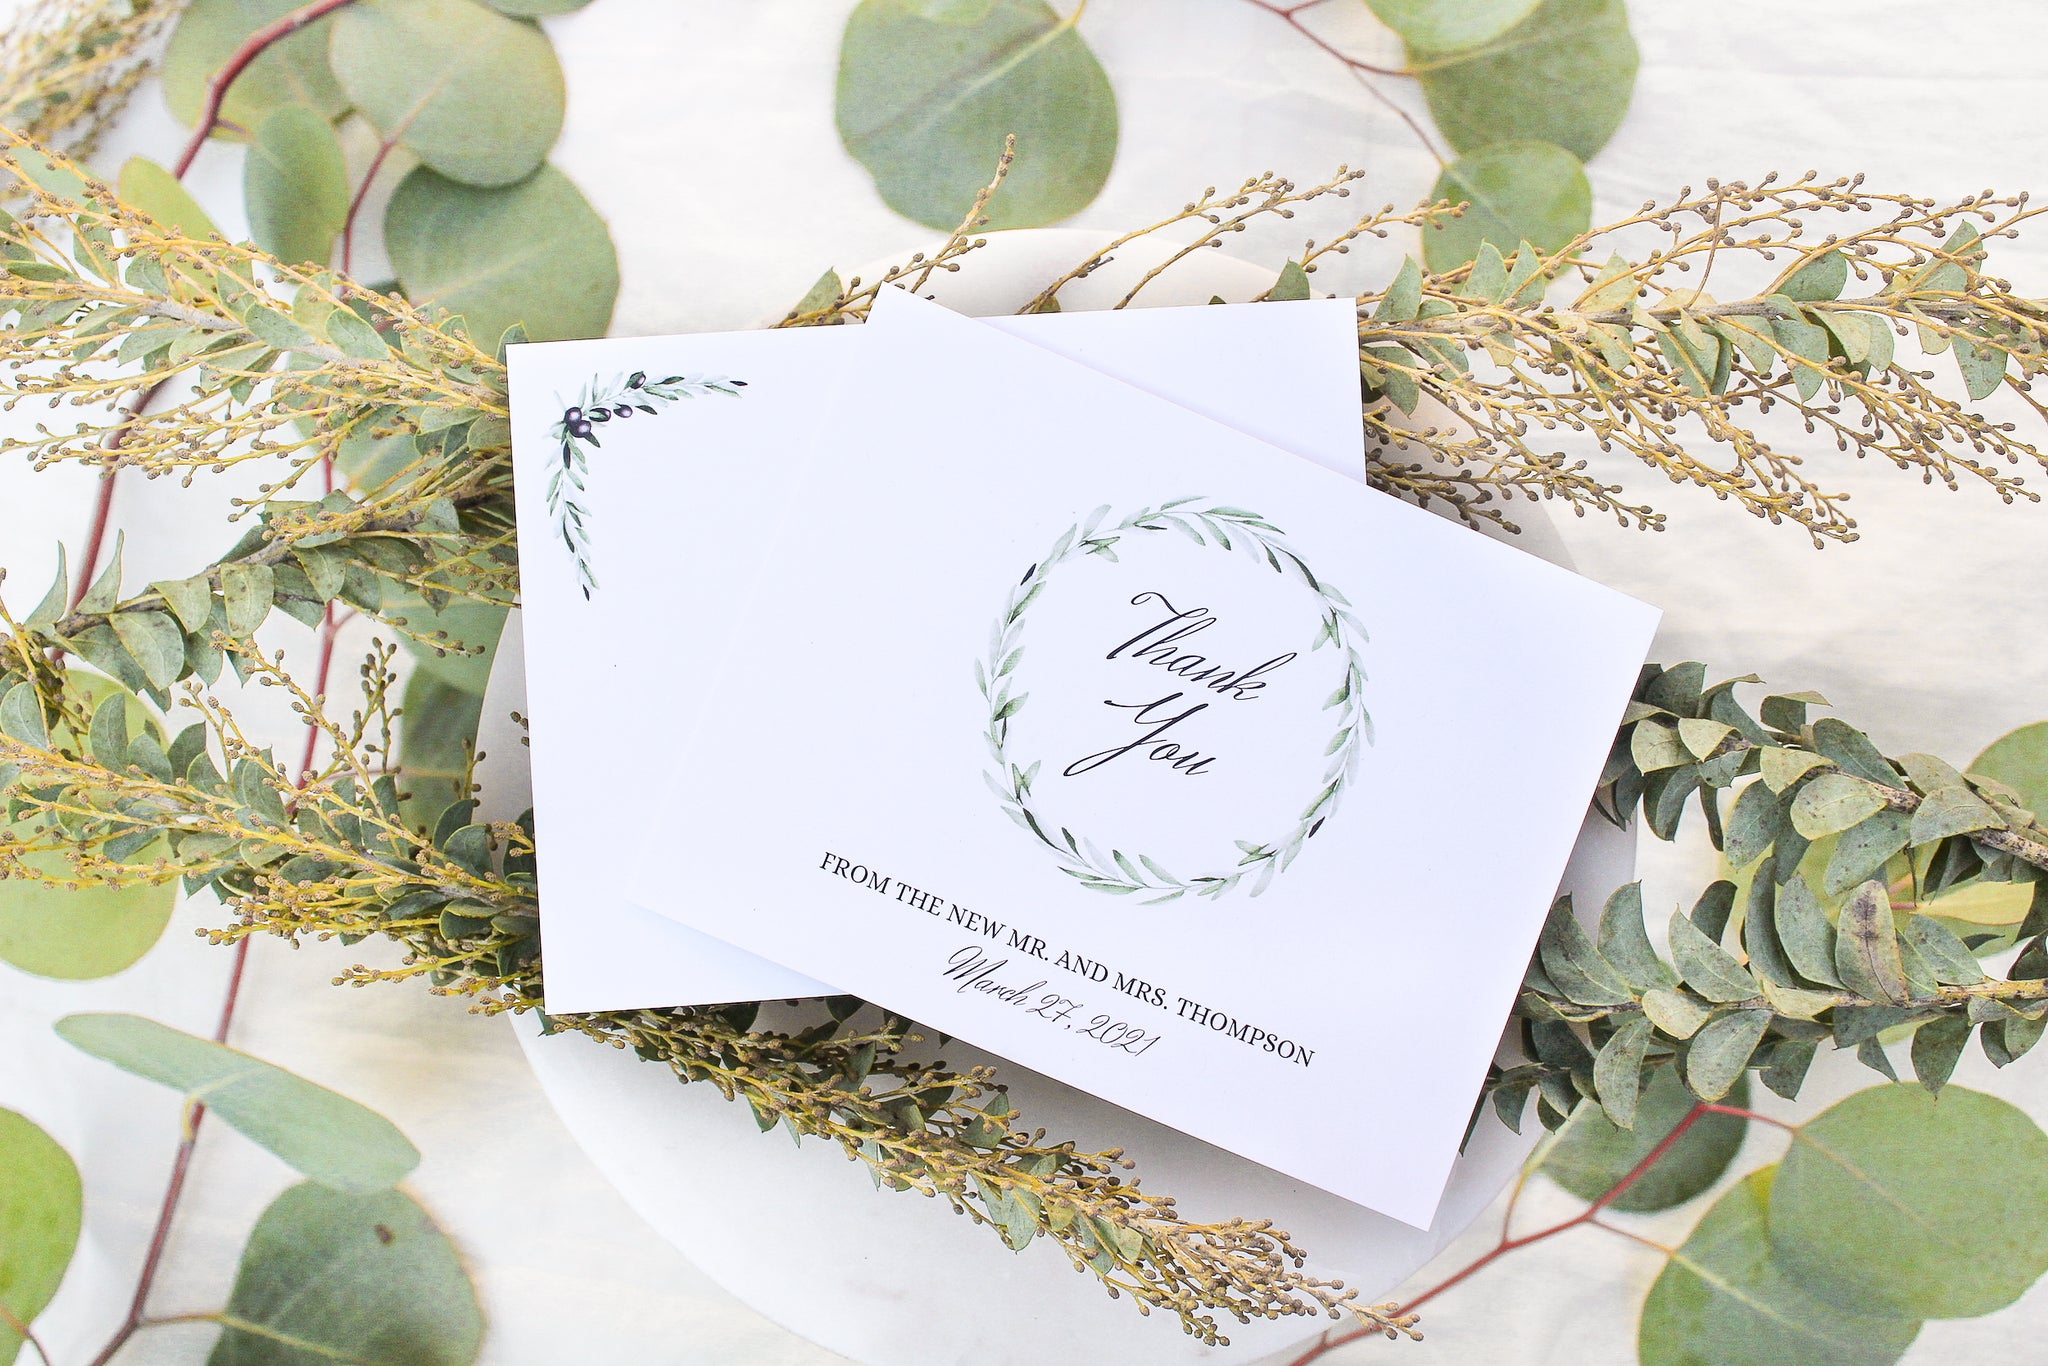 laurel wreath, olive branch, calligraphy personalized thank you note cards sustainably printed on 100% recycled paper